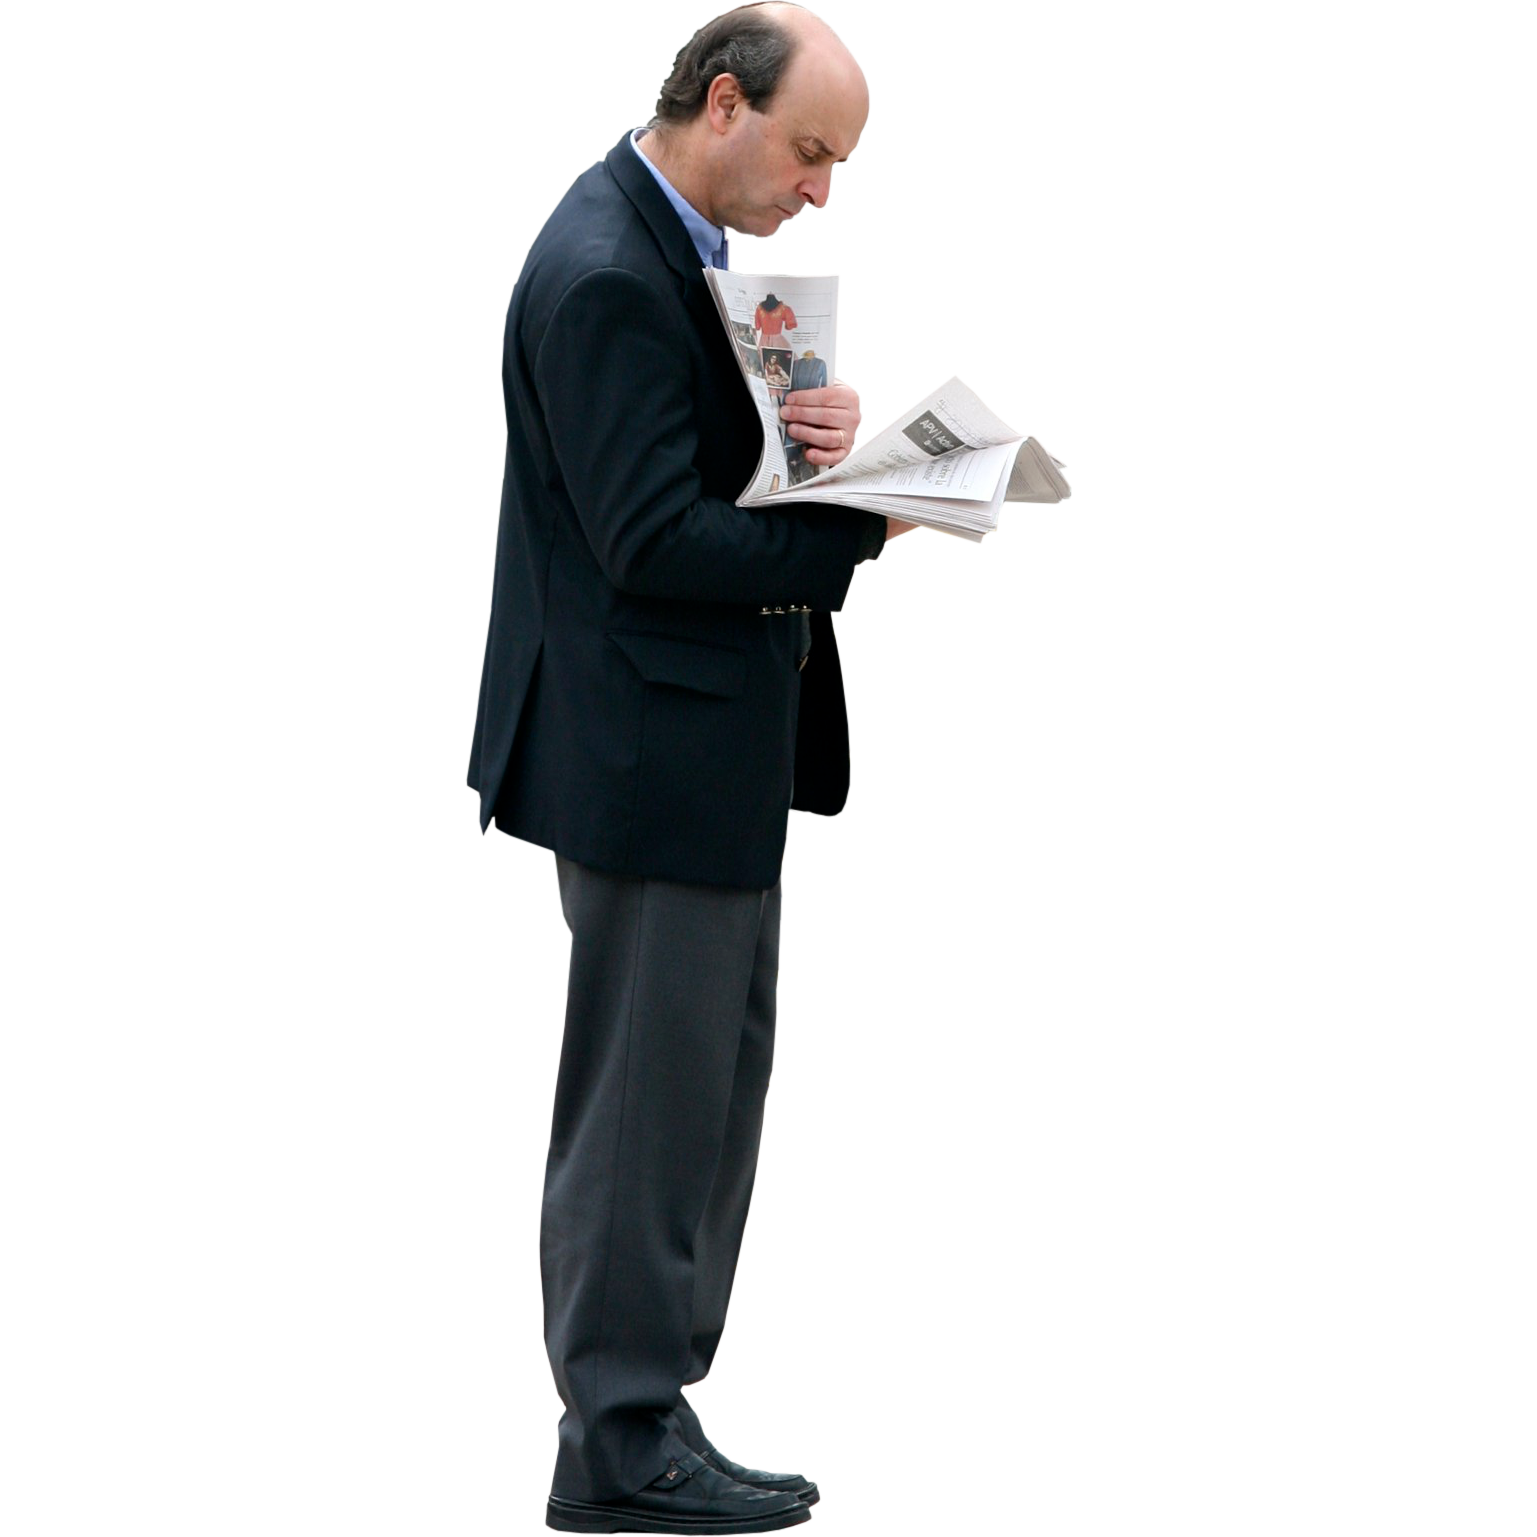 business people png hd